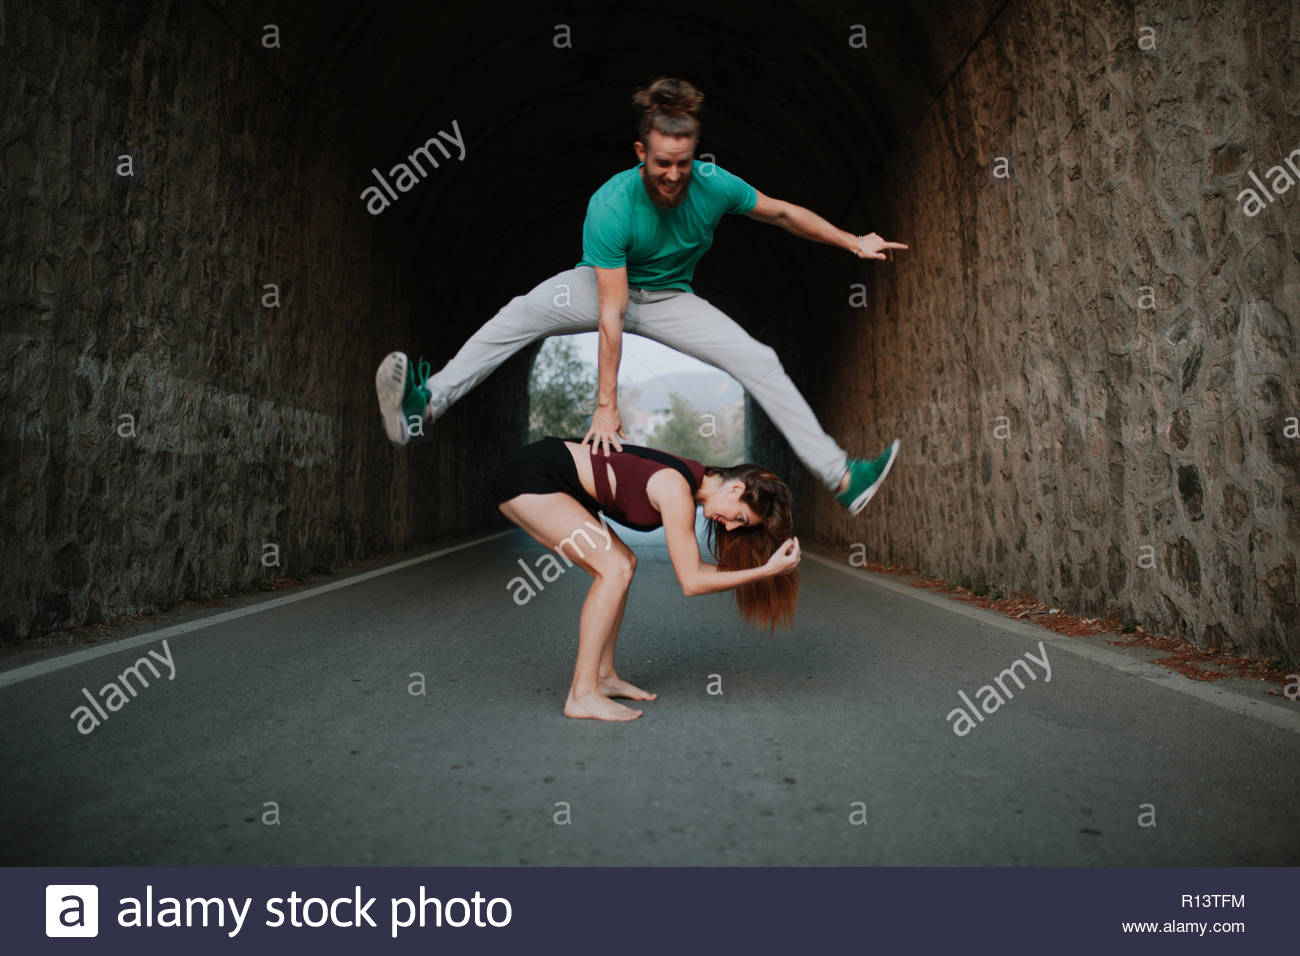 A young couple doing action shots in the street - Stock Image